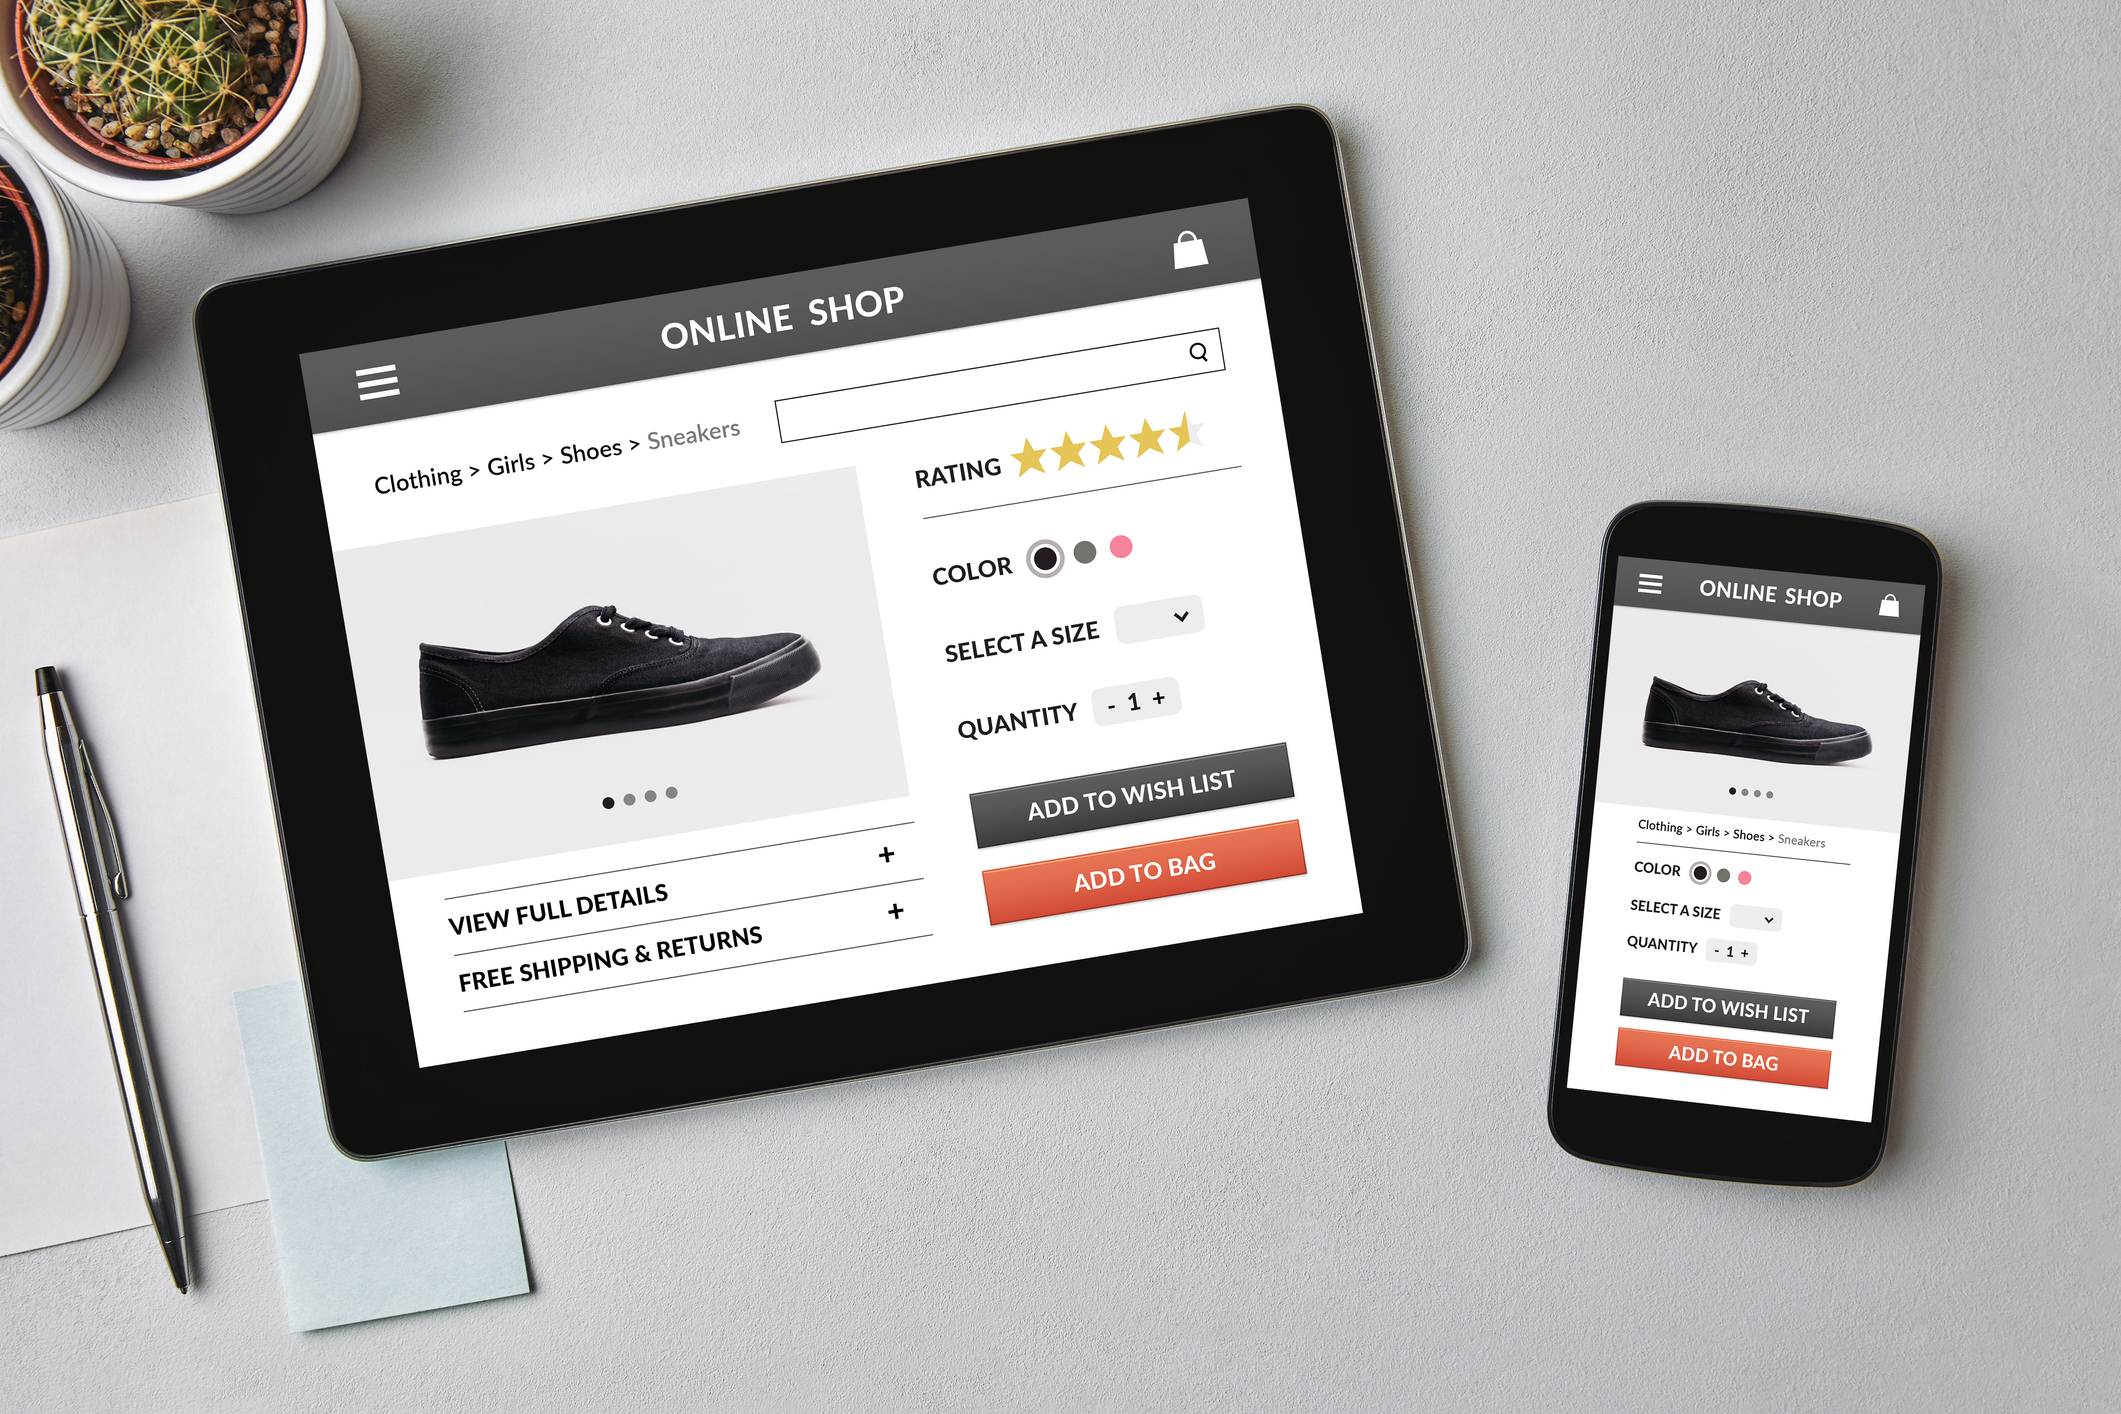 Online shop concept on tablet and smartphone